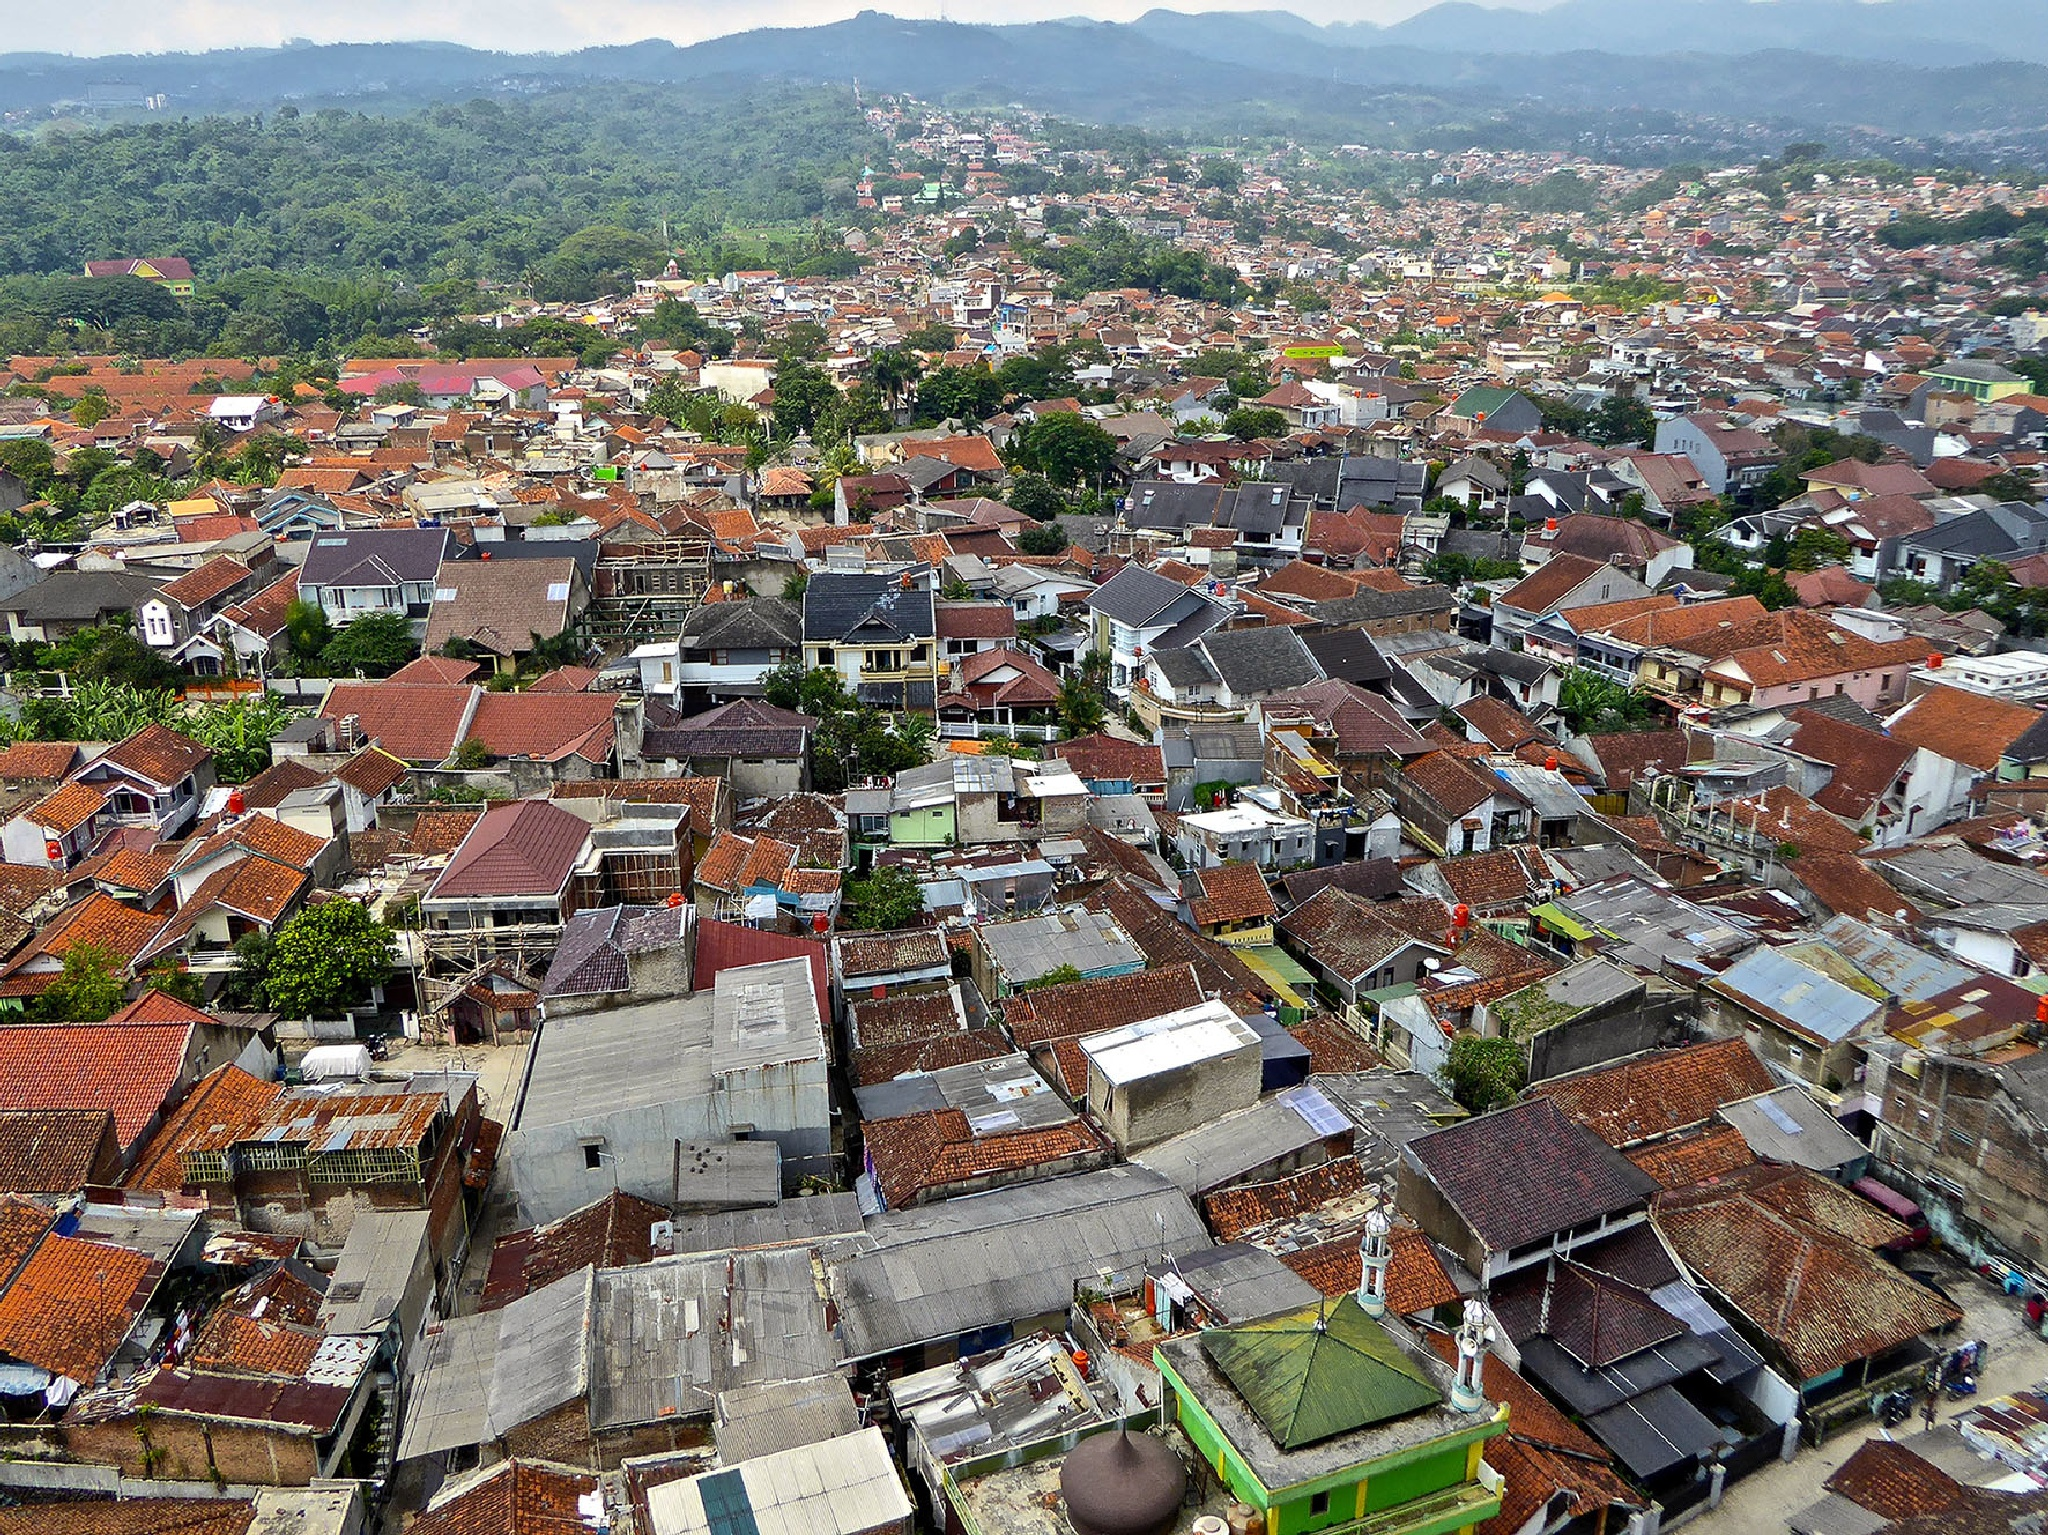 Bandung, Indonesia from the roof of the hotel by Erwin Widmer